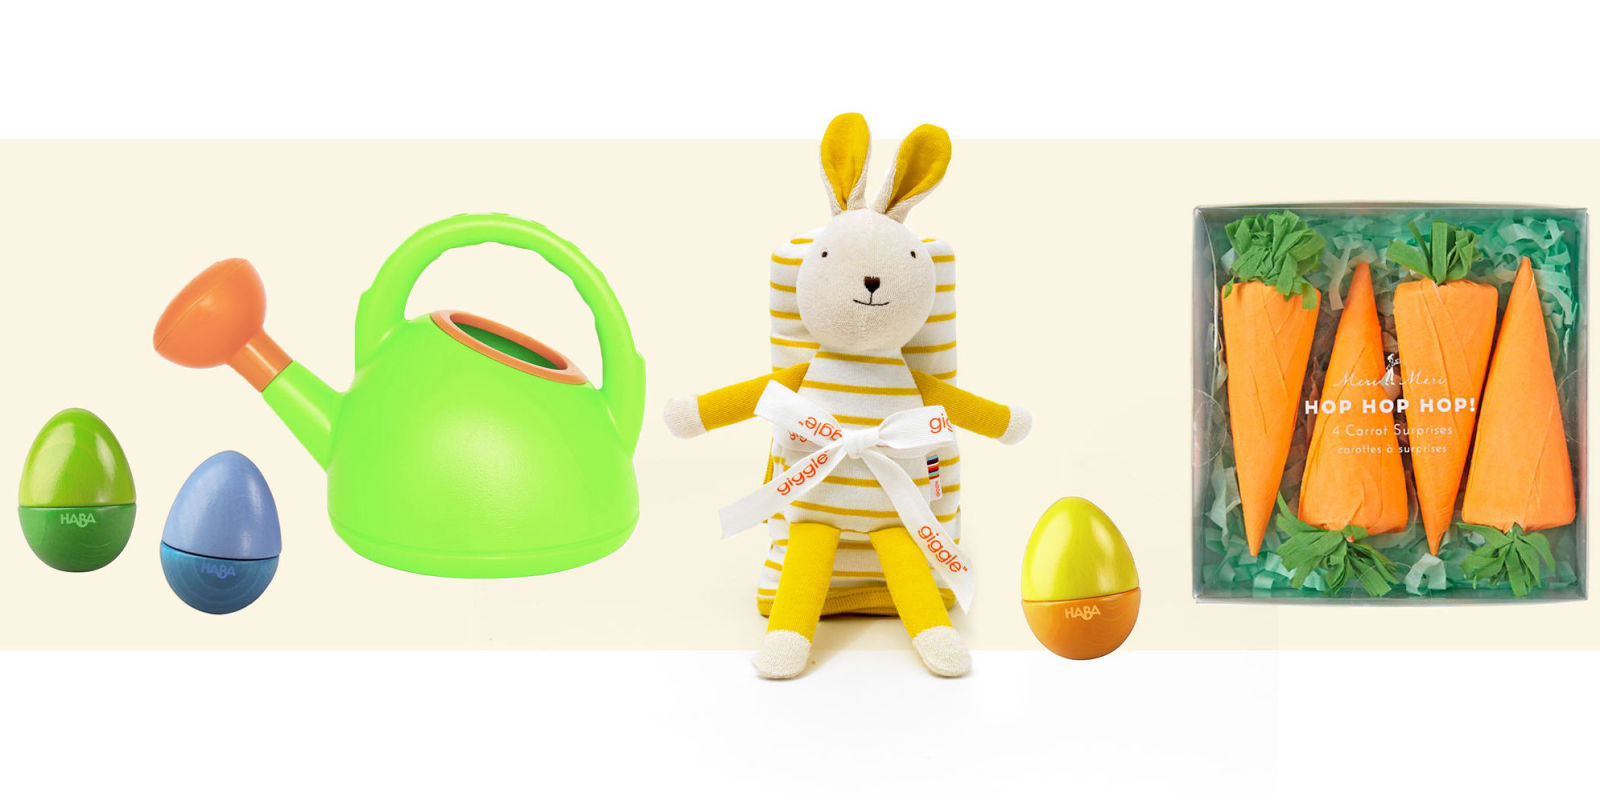 15 Best Easter Baskets For Kids 2016 - Cute Easter Gift ...